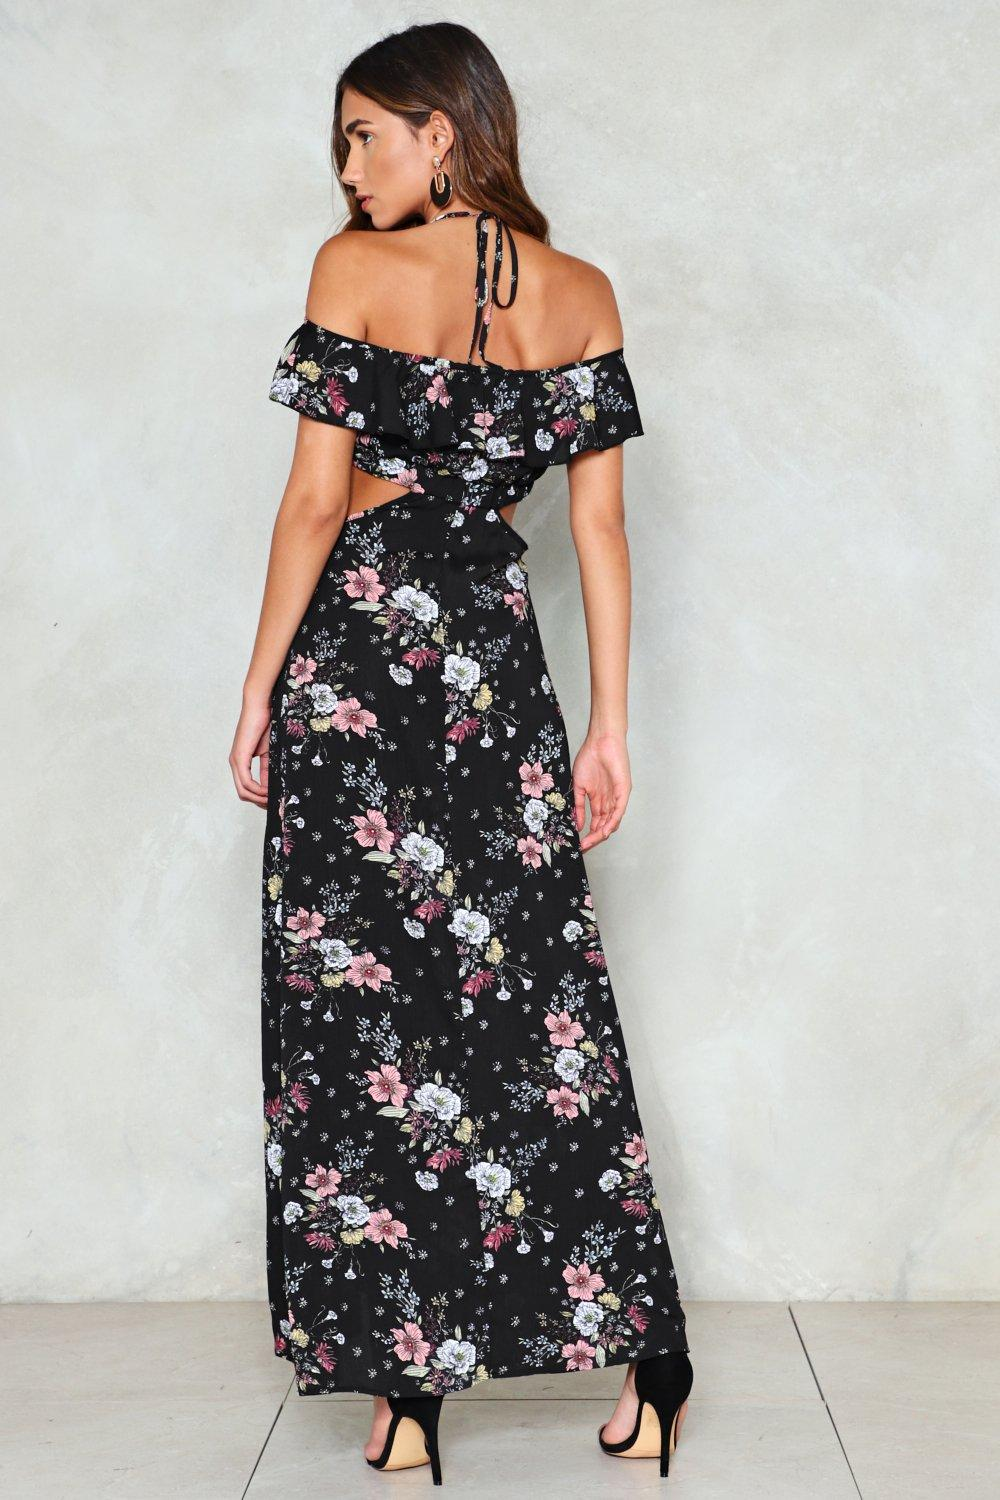 1147a0197a8e4 Growing on Me Floral Maxi Dress | Shop Clothes at Nasty Gal!